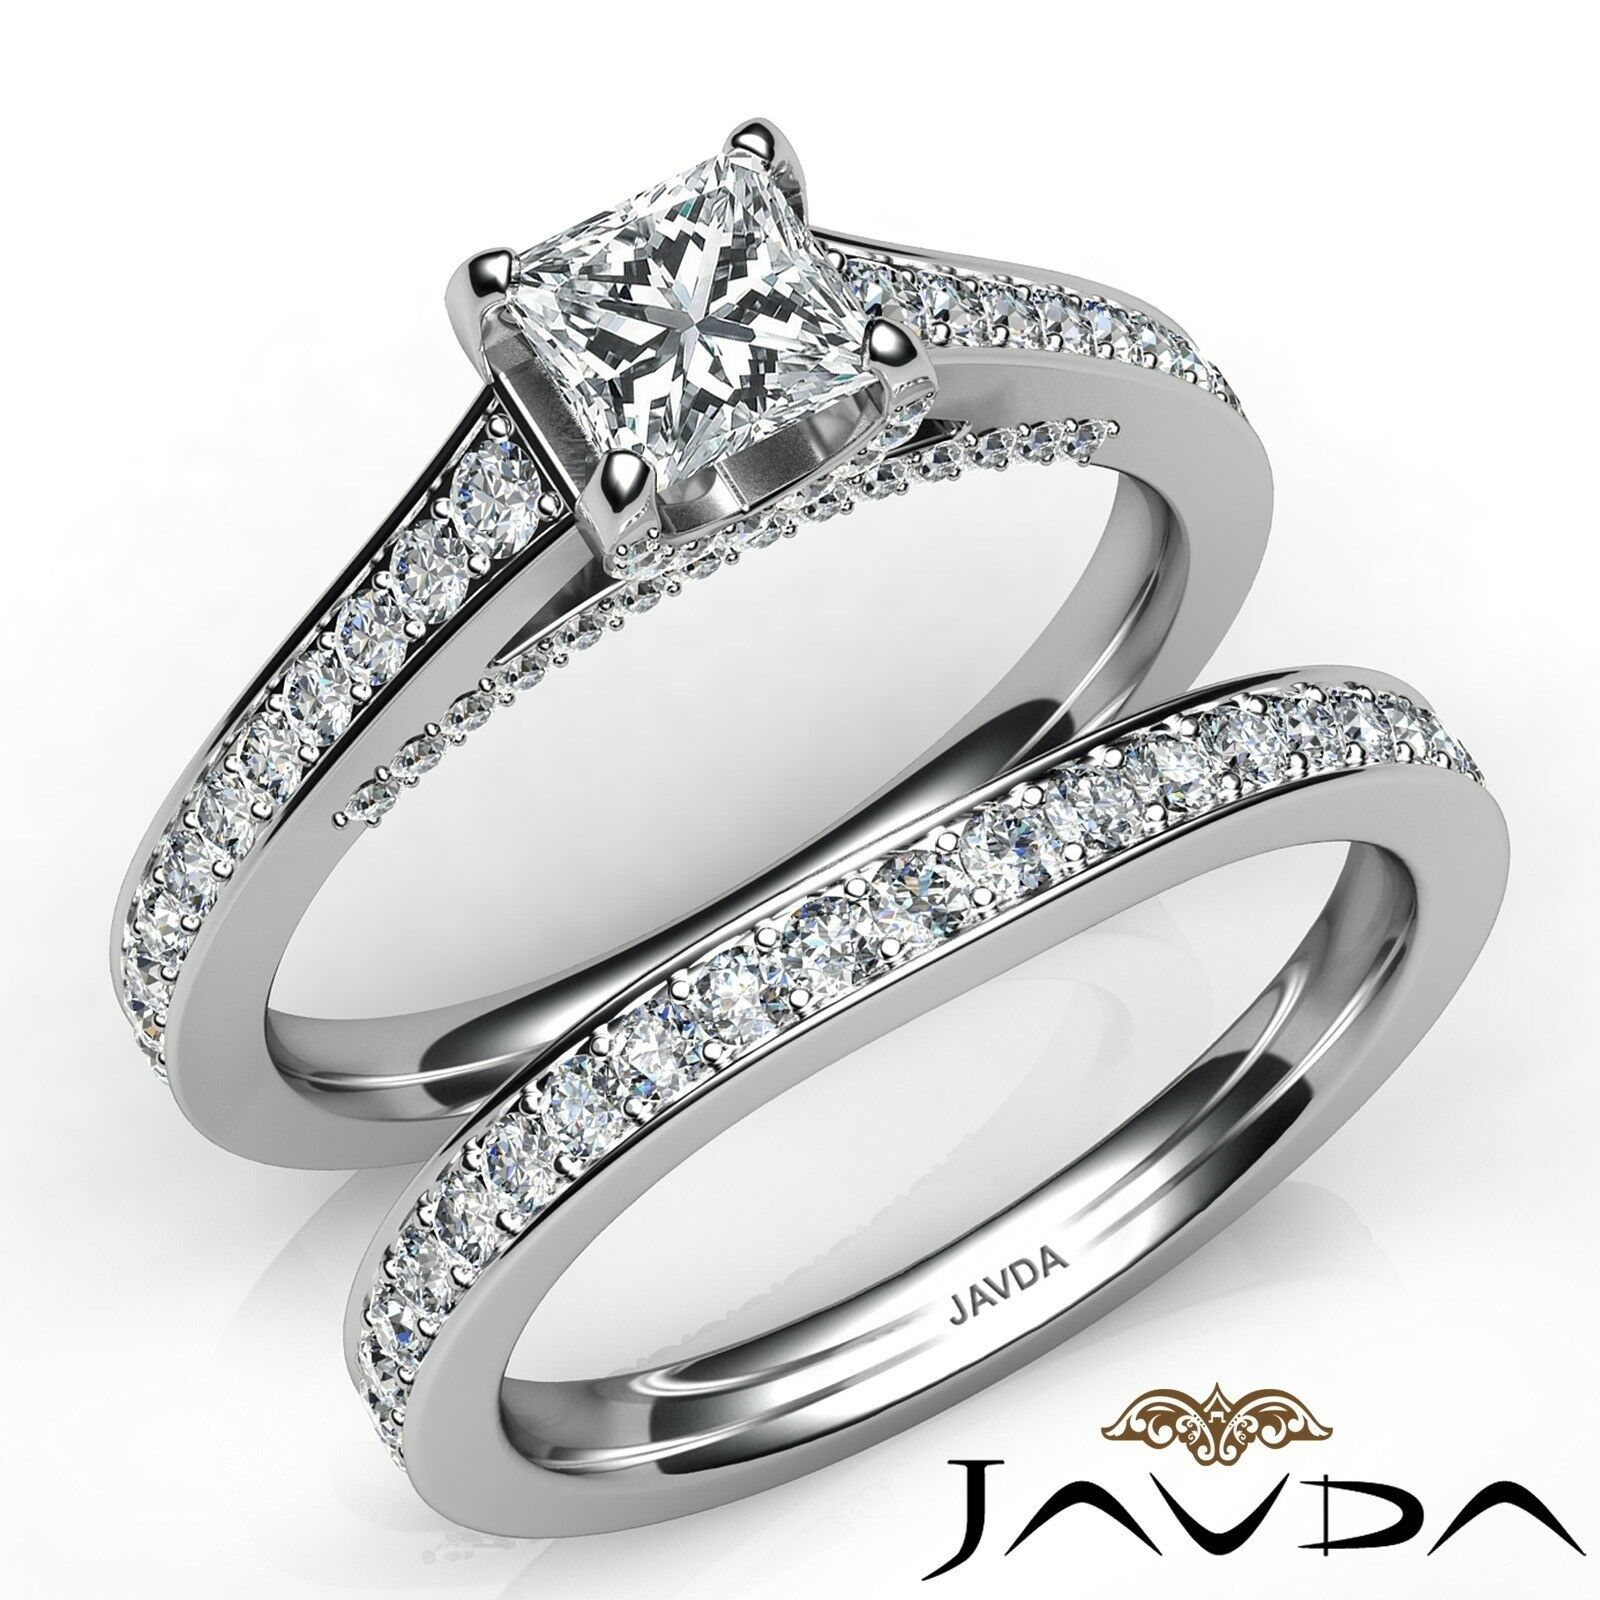 2.05ct Accent Bridge Pave Bridal Princess Diamond Engagement Ring GIA F-VS2 Gold